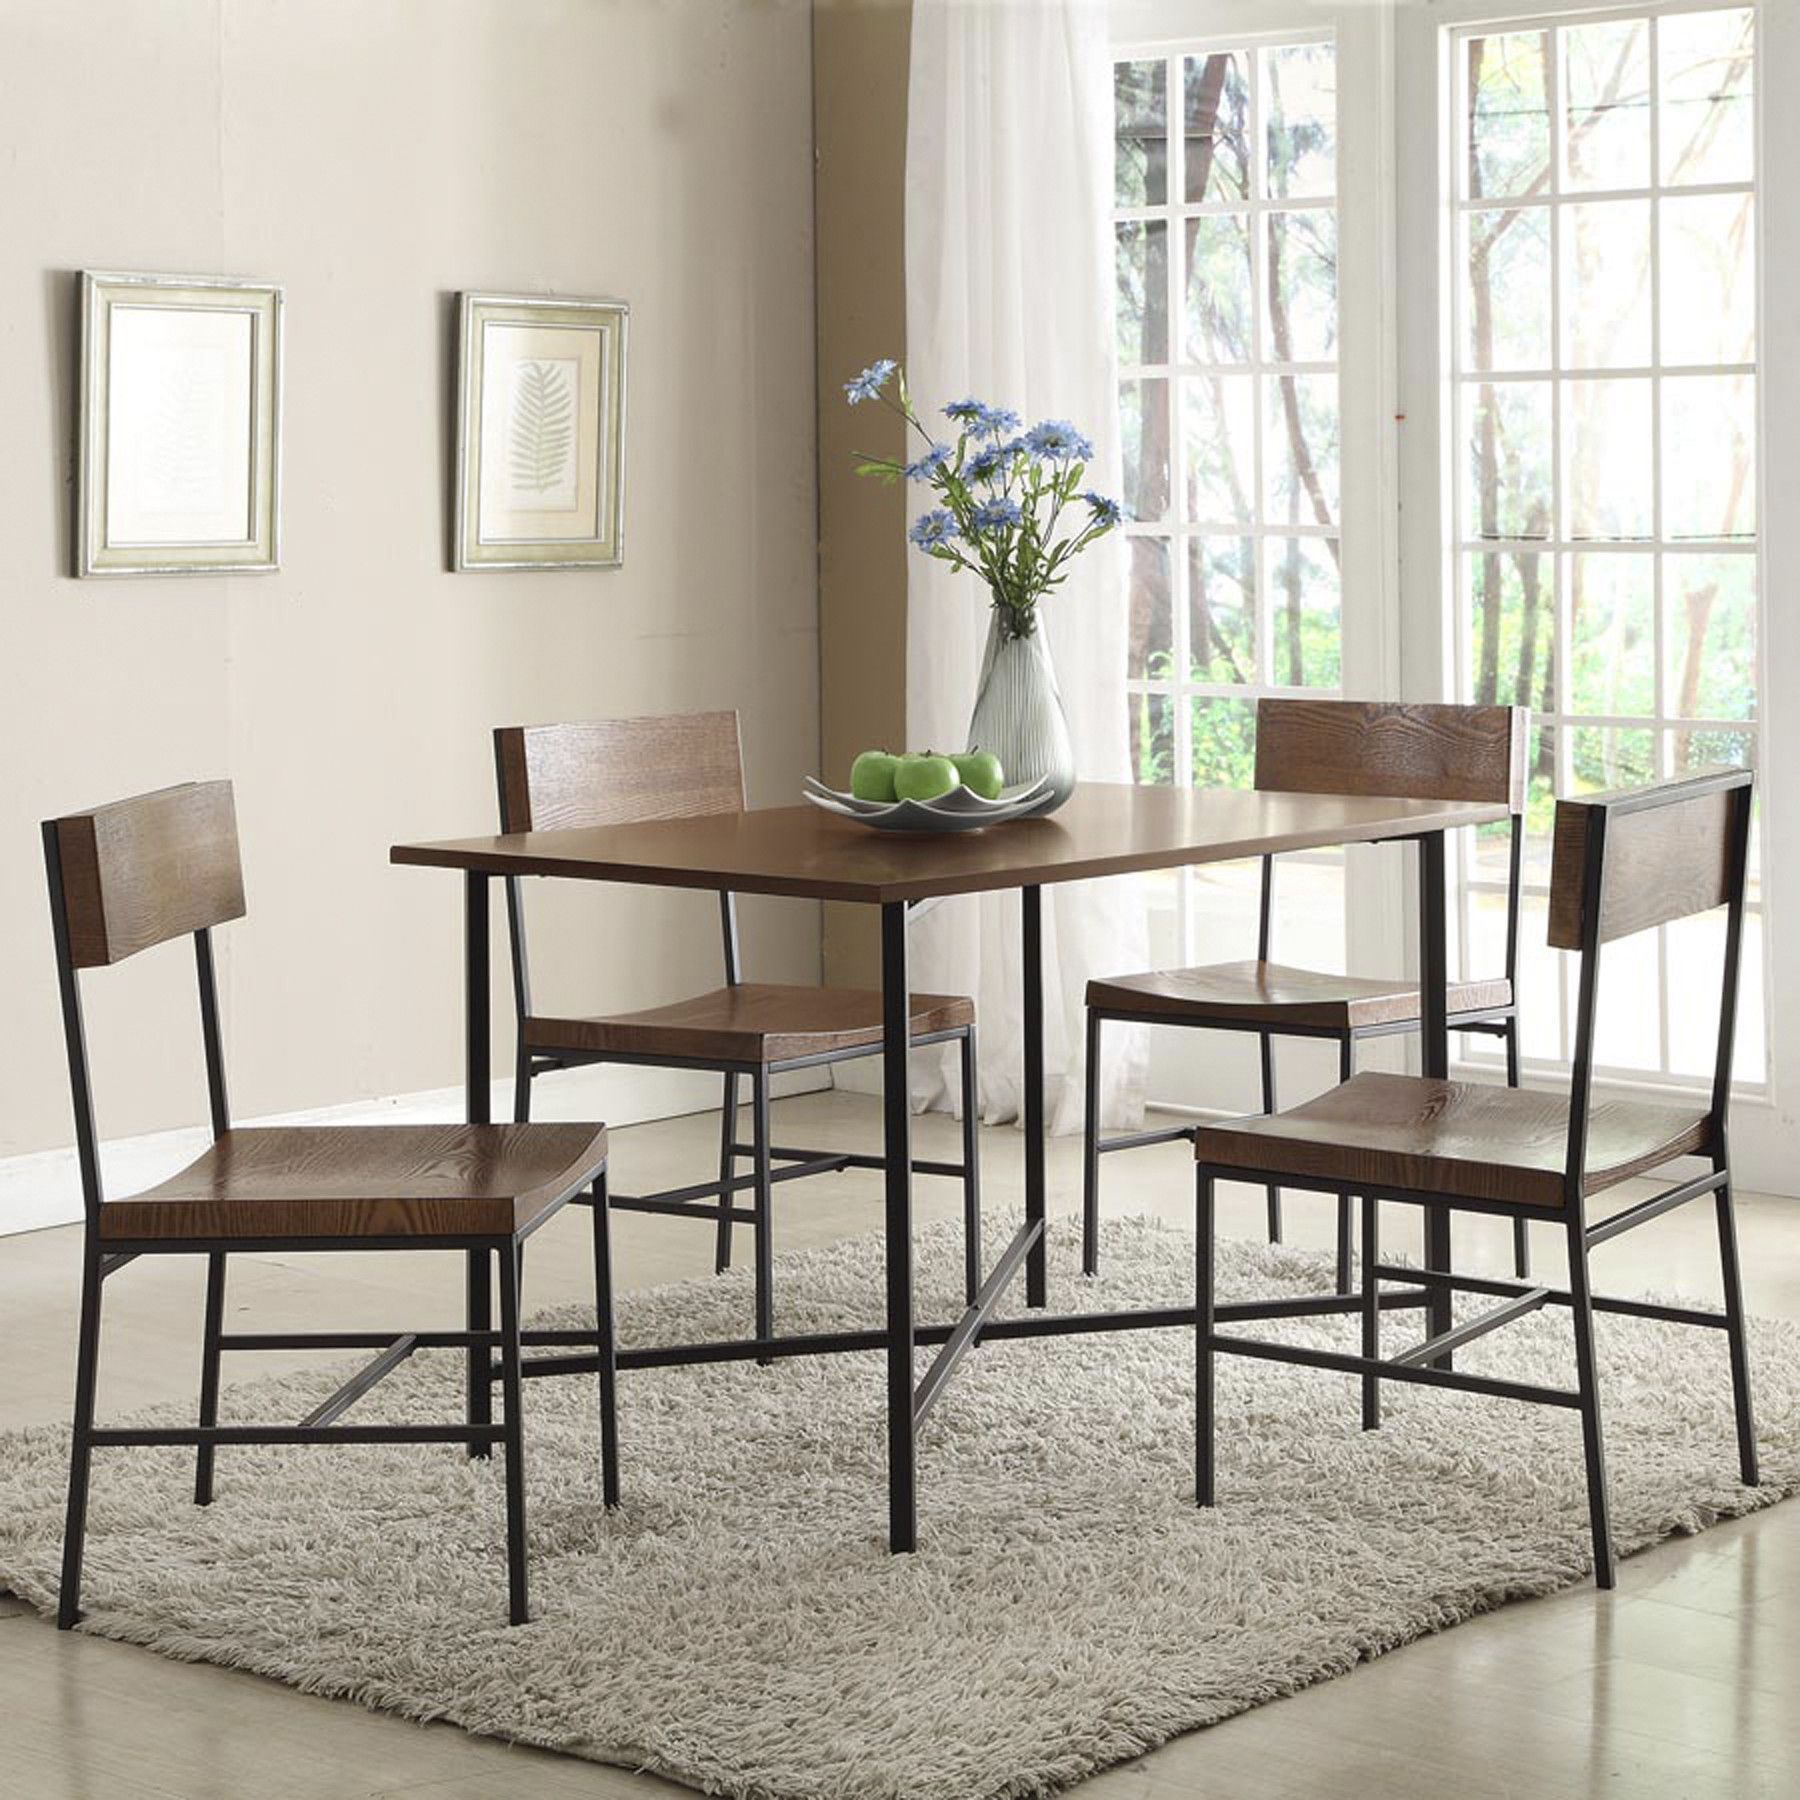 Otto Dining Table Otto Dining Table